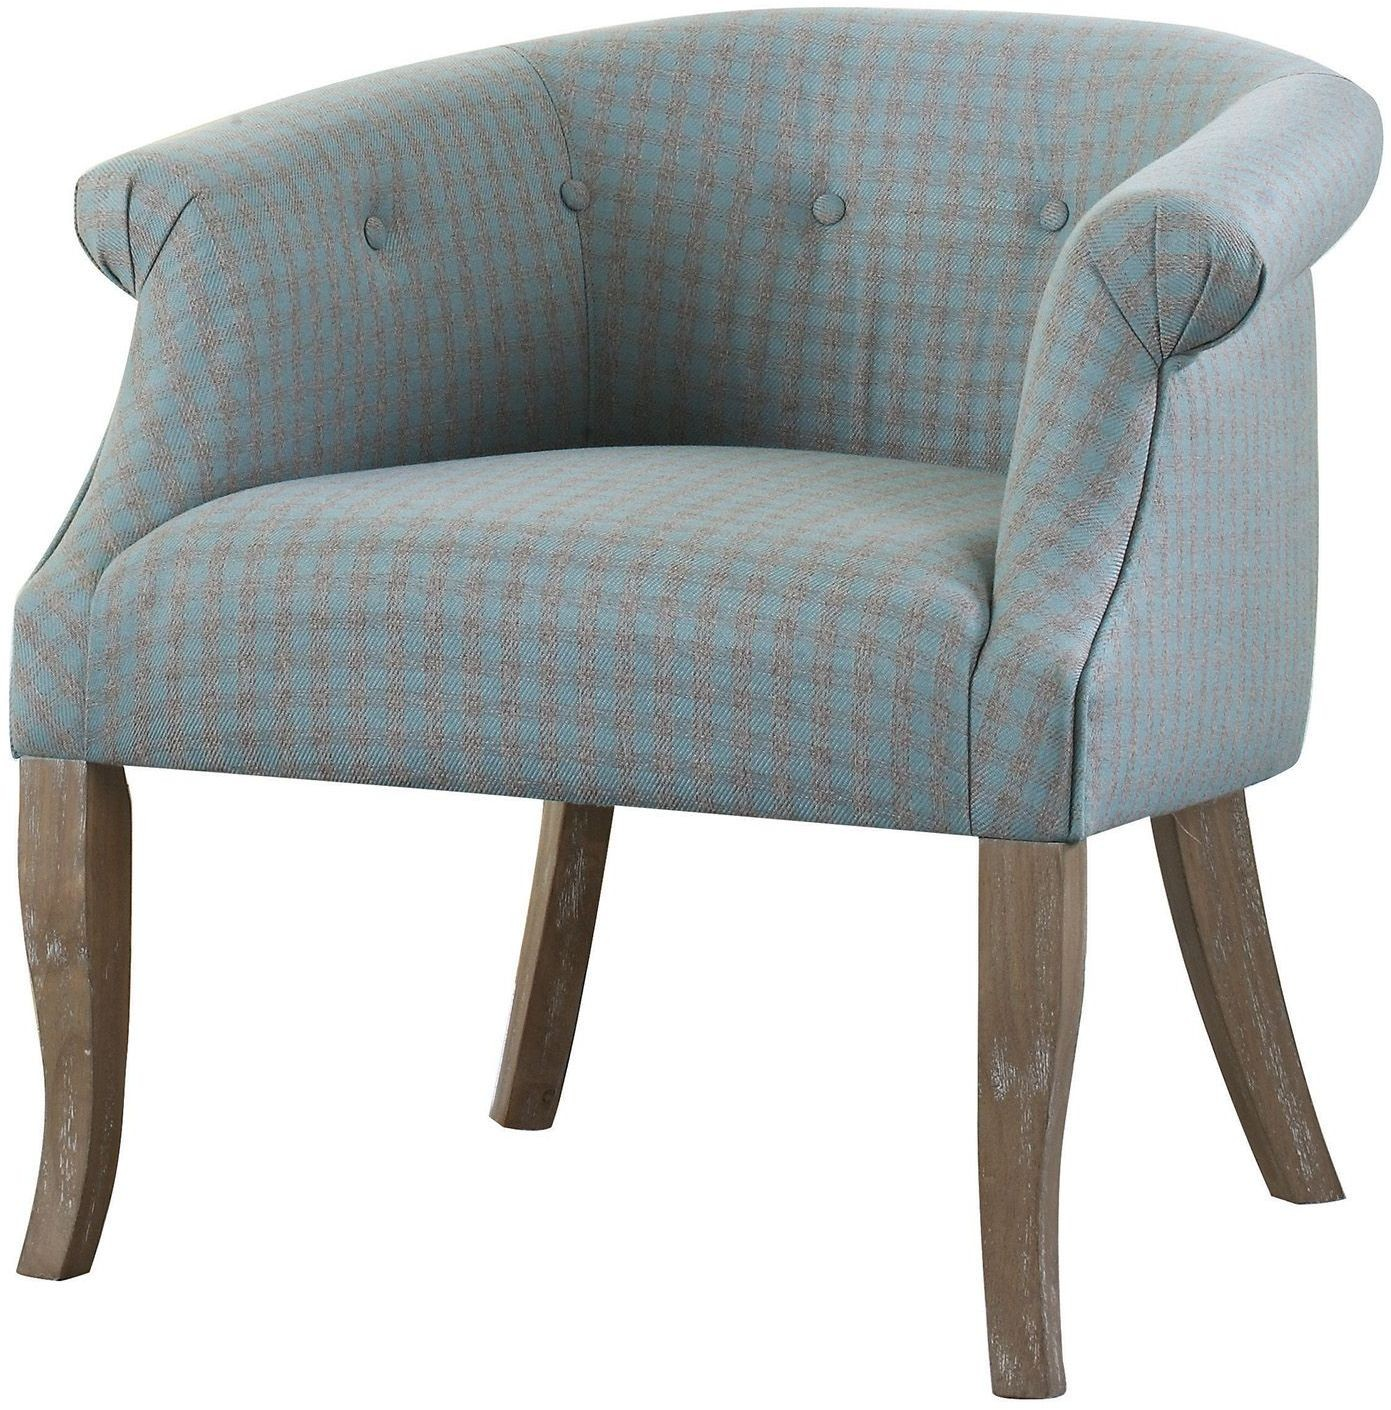 Light Gray Accent Chairs Light Blue And Gray Accent Chair From Coaster Coleman